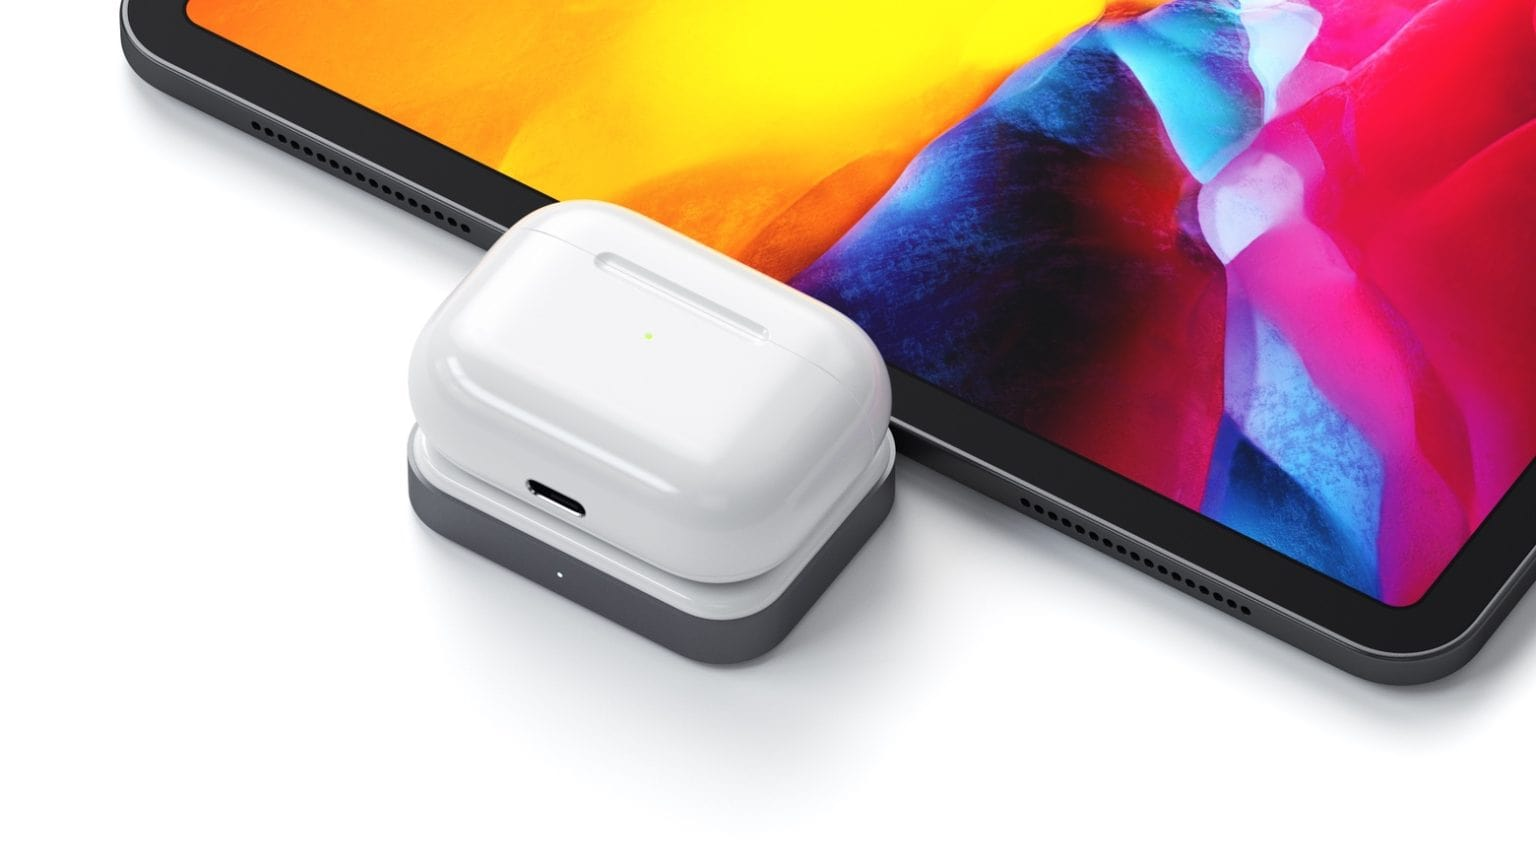 Satechi USB-C Wireless Charging Dock for Apple AirPods Pro